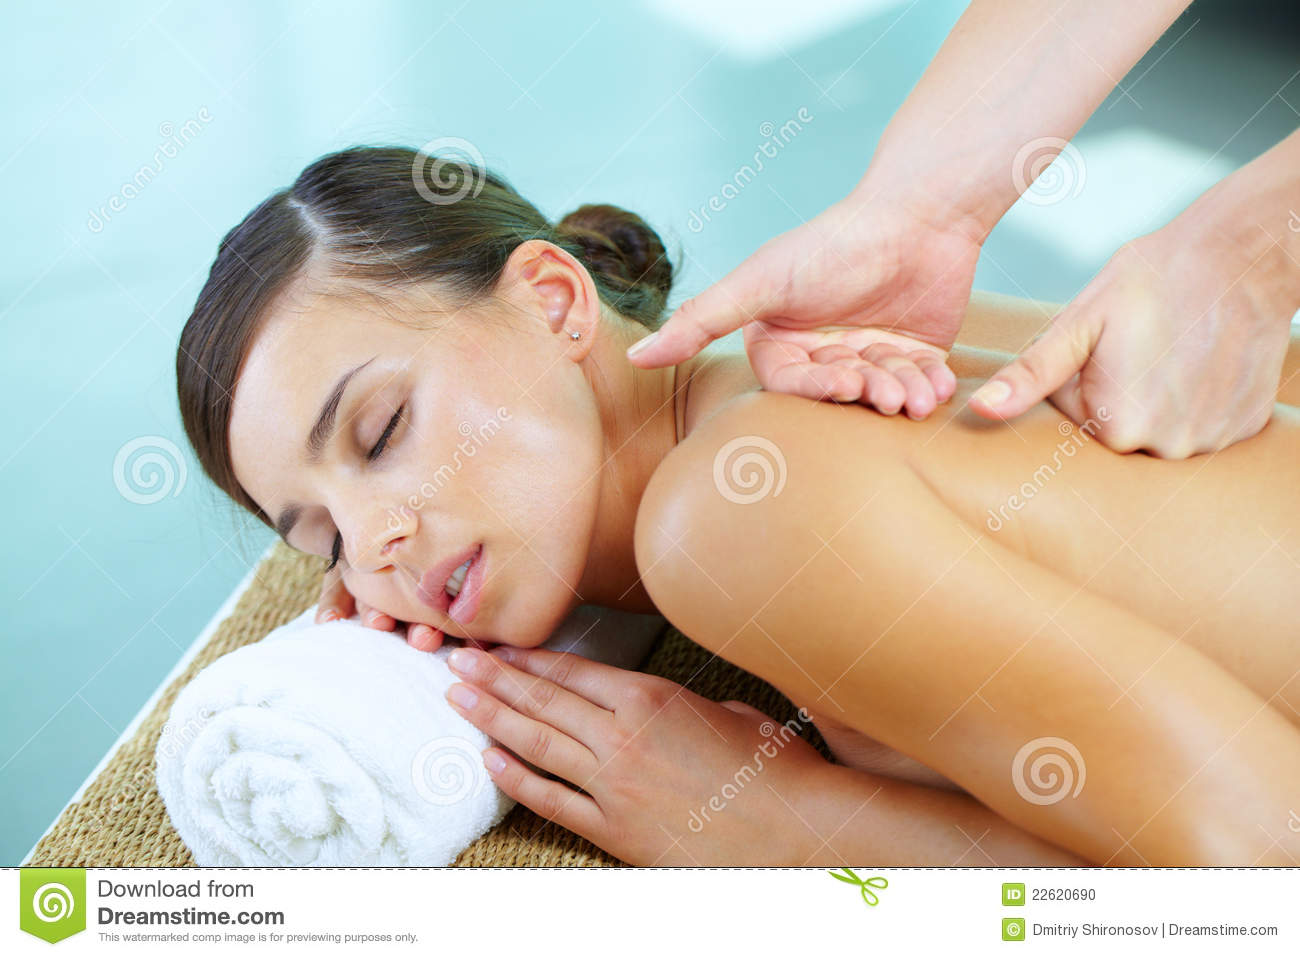 During massage